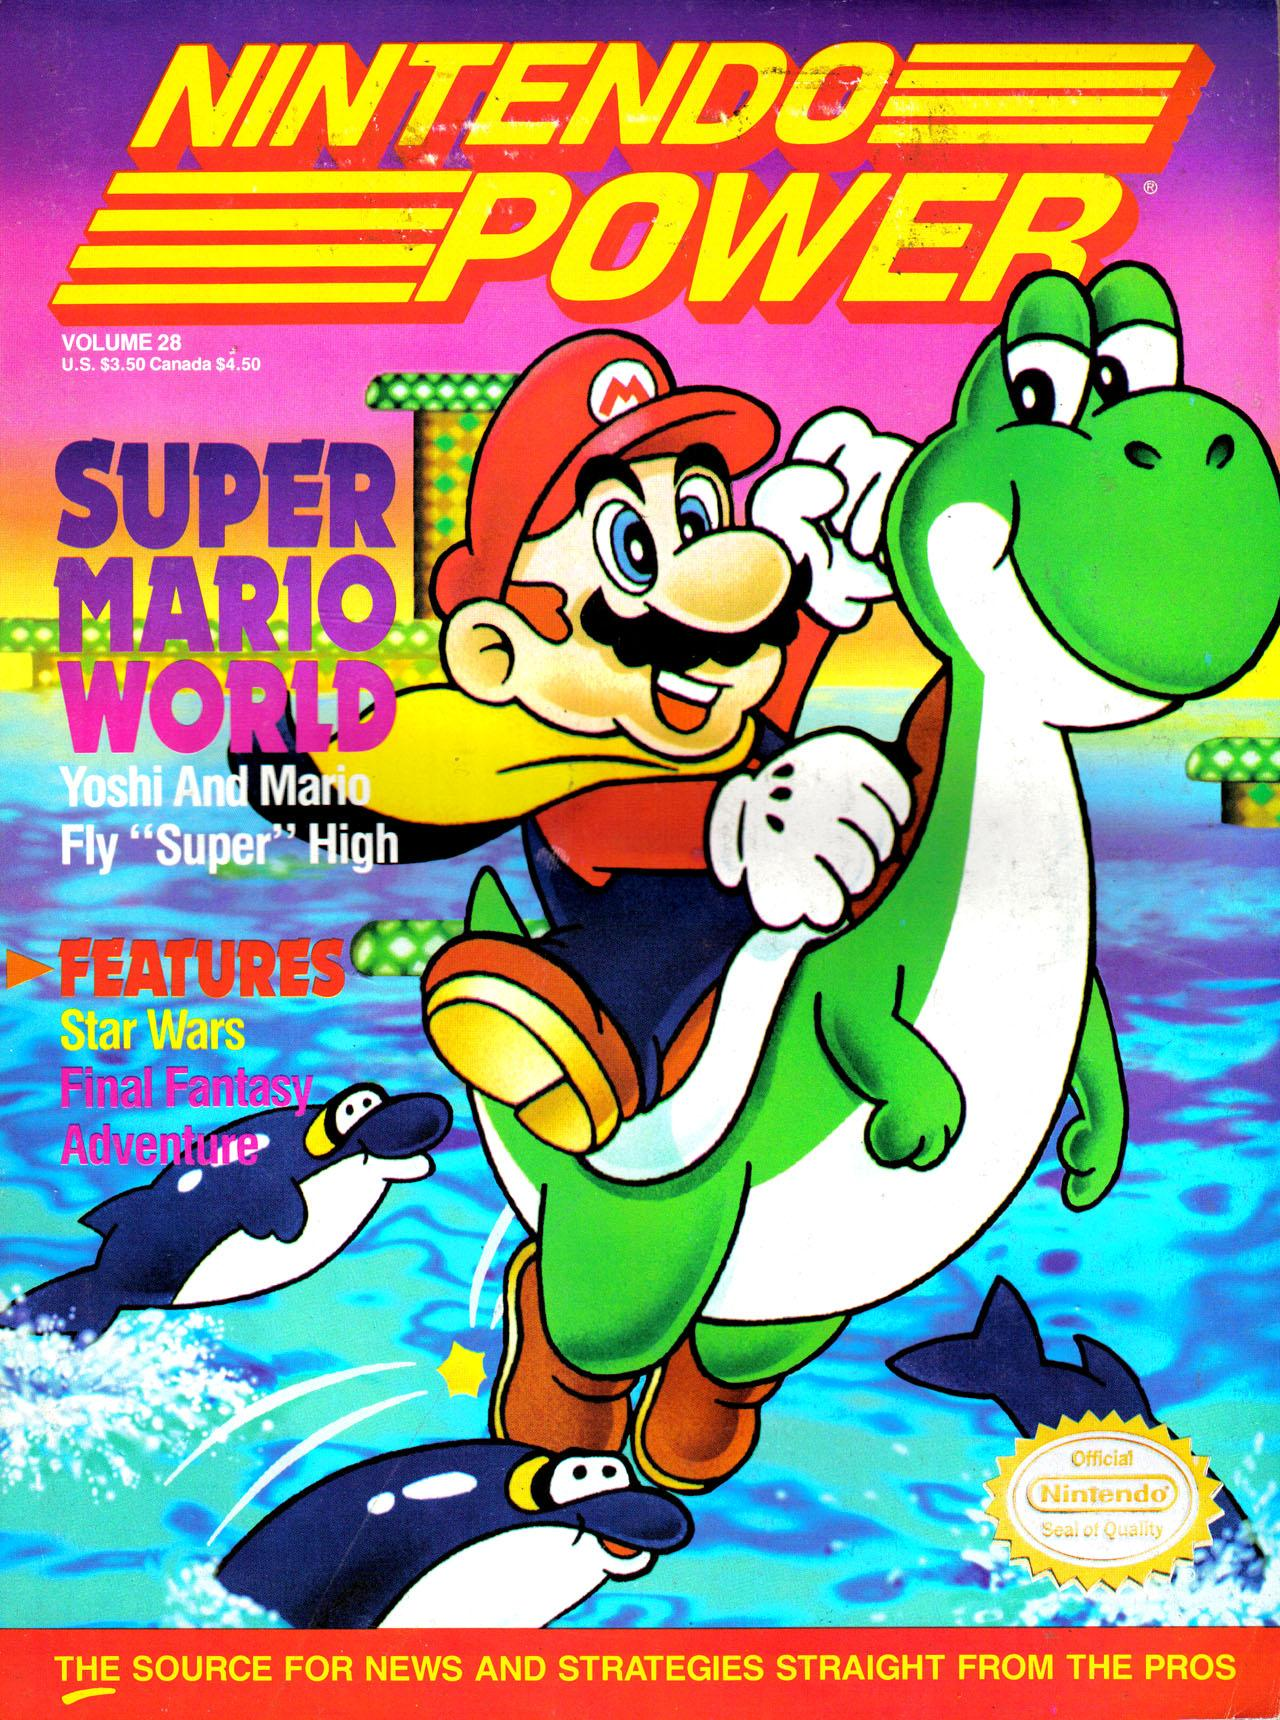 Now Nintendo Power Is Ending Ign Boards